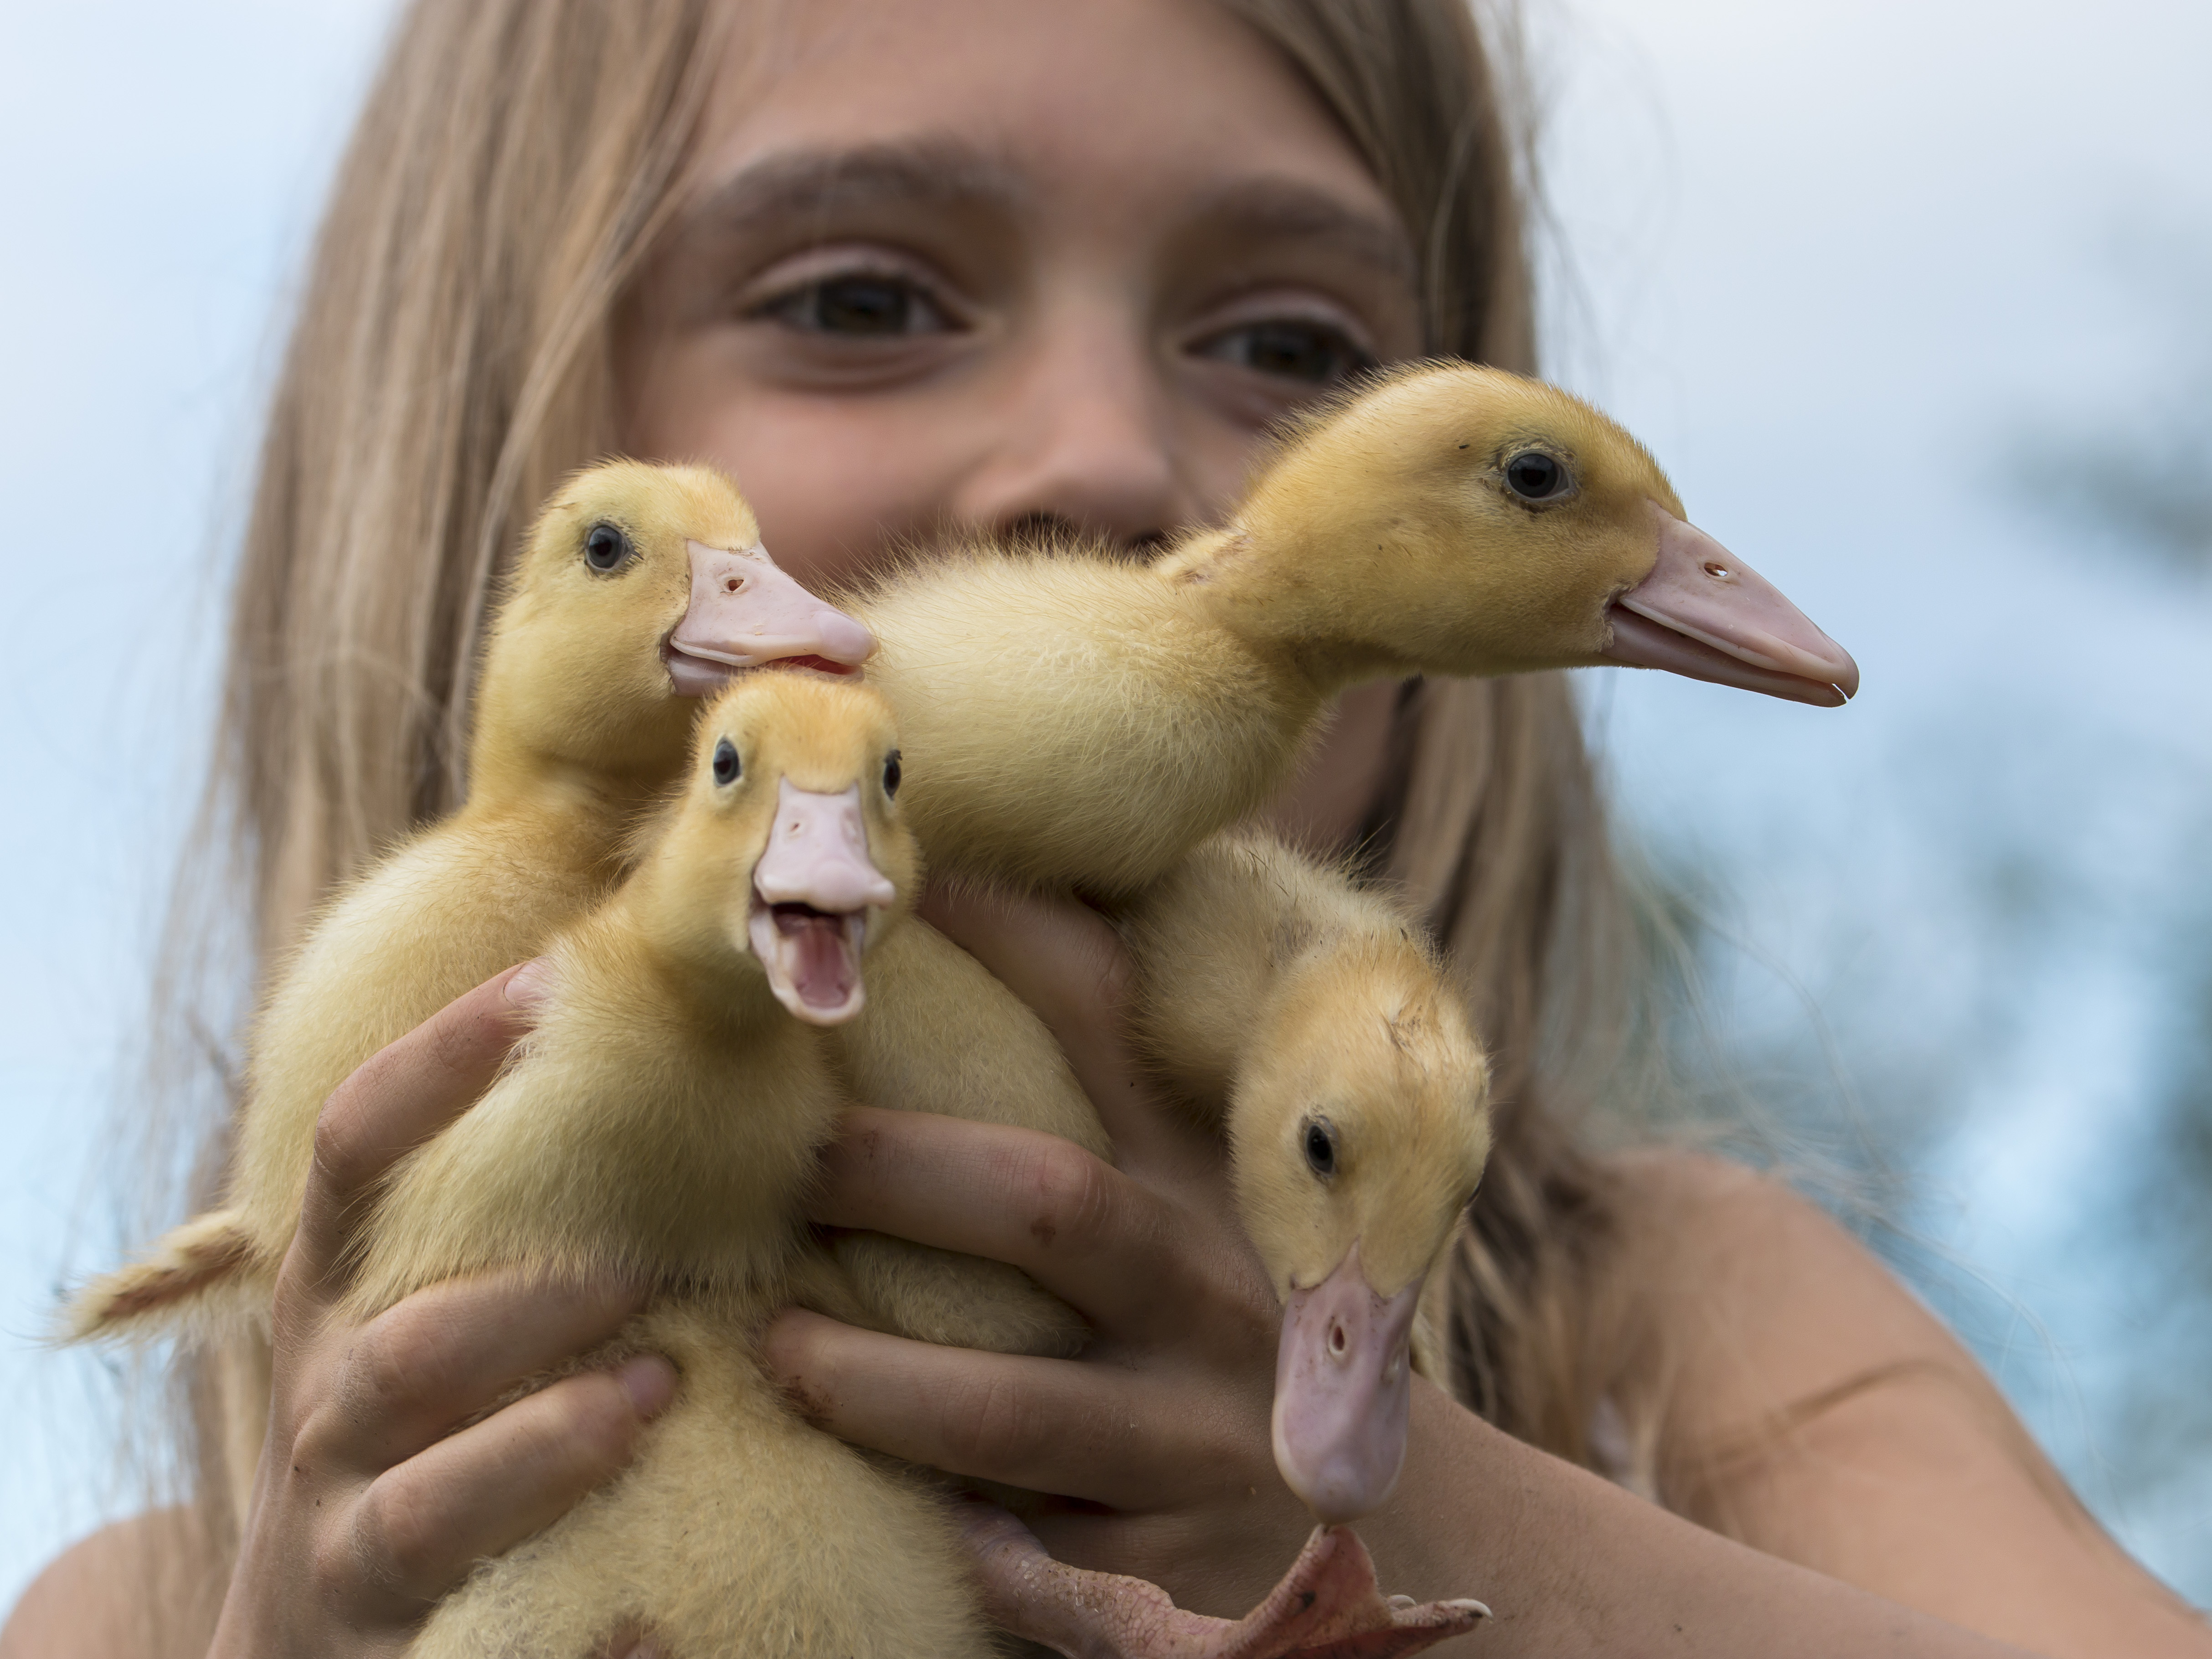 Girl with ducklings 9602